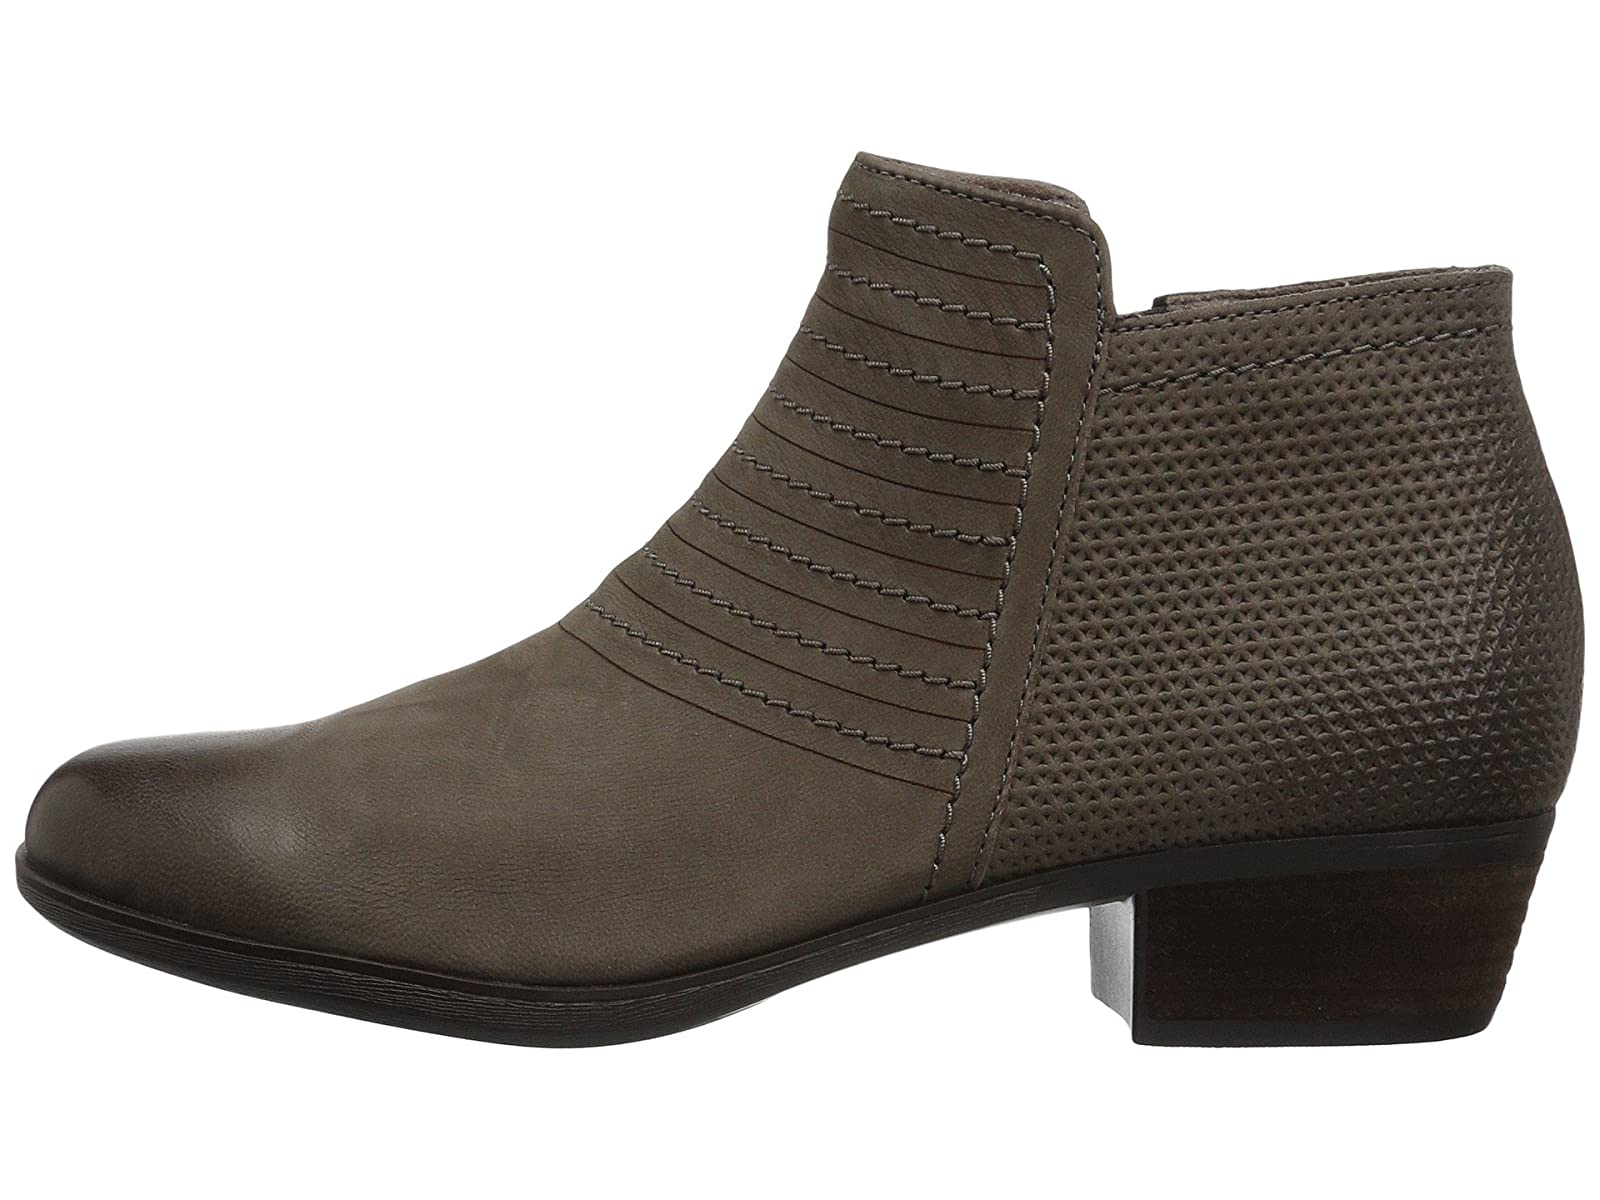 Man's/Woman's Man's/Woman's Man's/Woman's Man's/Woman's Rockport Vanna Strappy Buy now  Great value 8c9d86